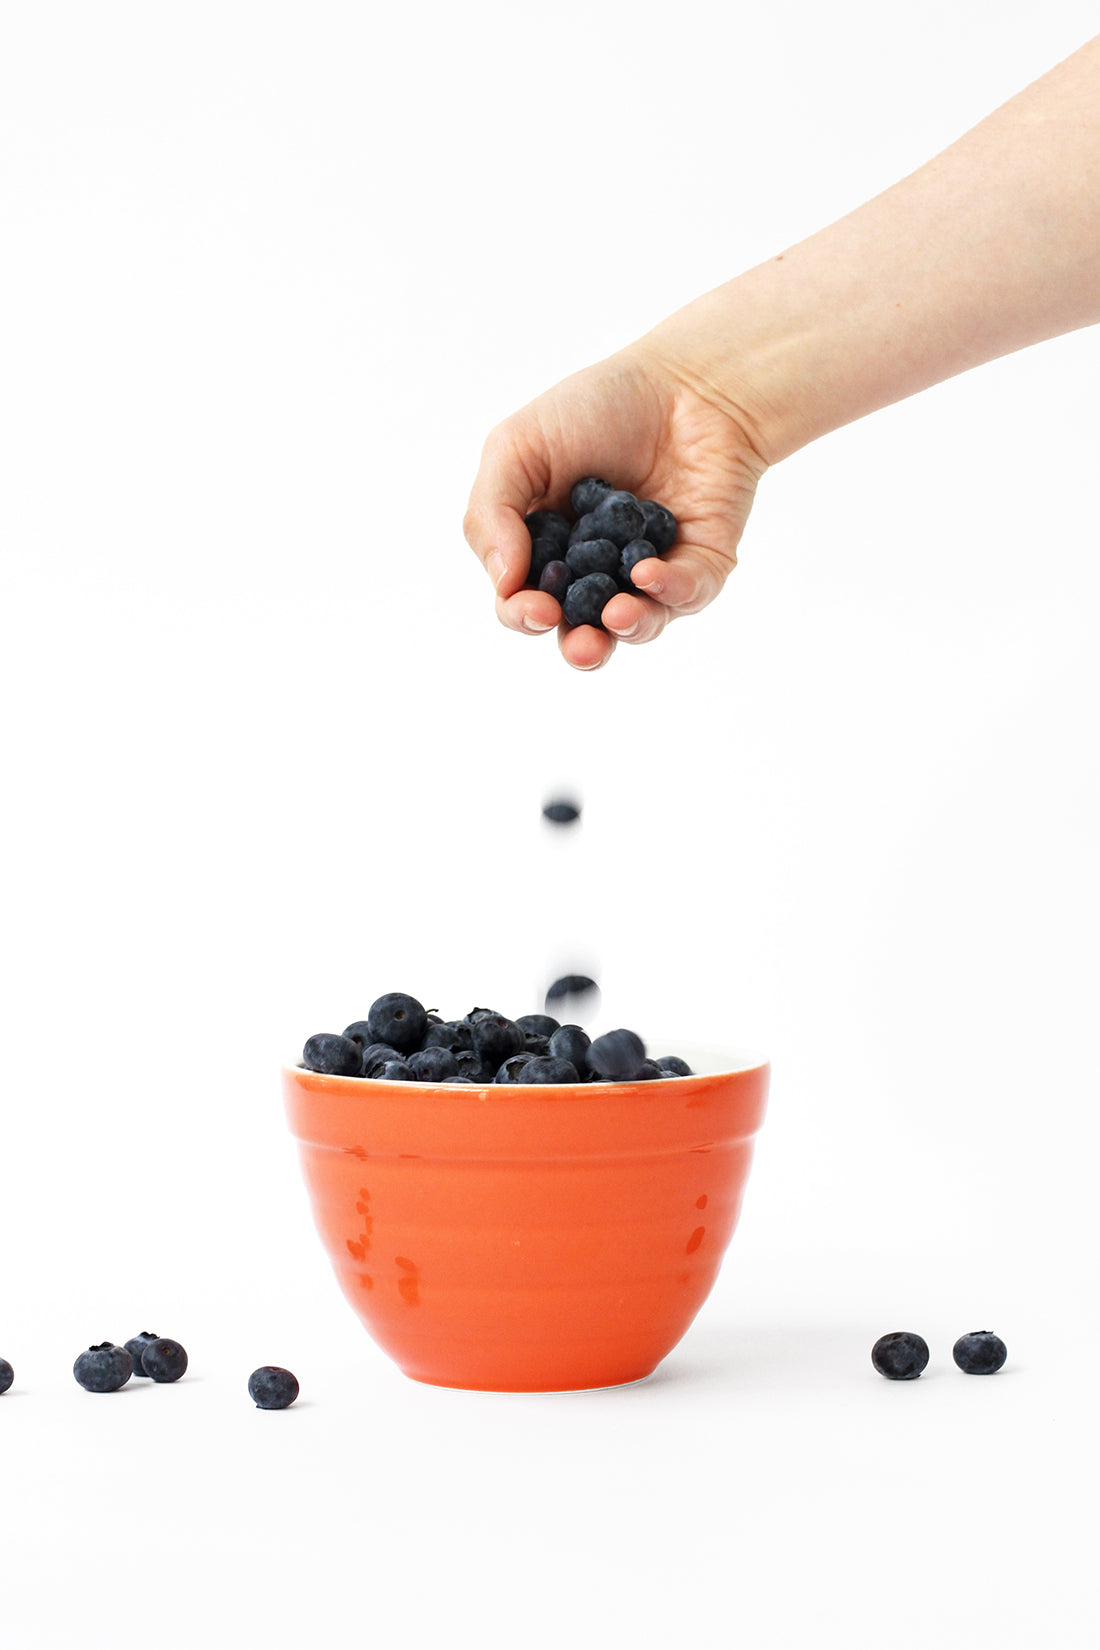 Image of a hand dropping blueberries into an orange bowl used for Miss Jones Baking Co Firecracker Pops recipe